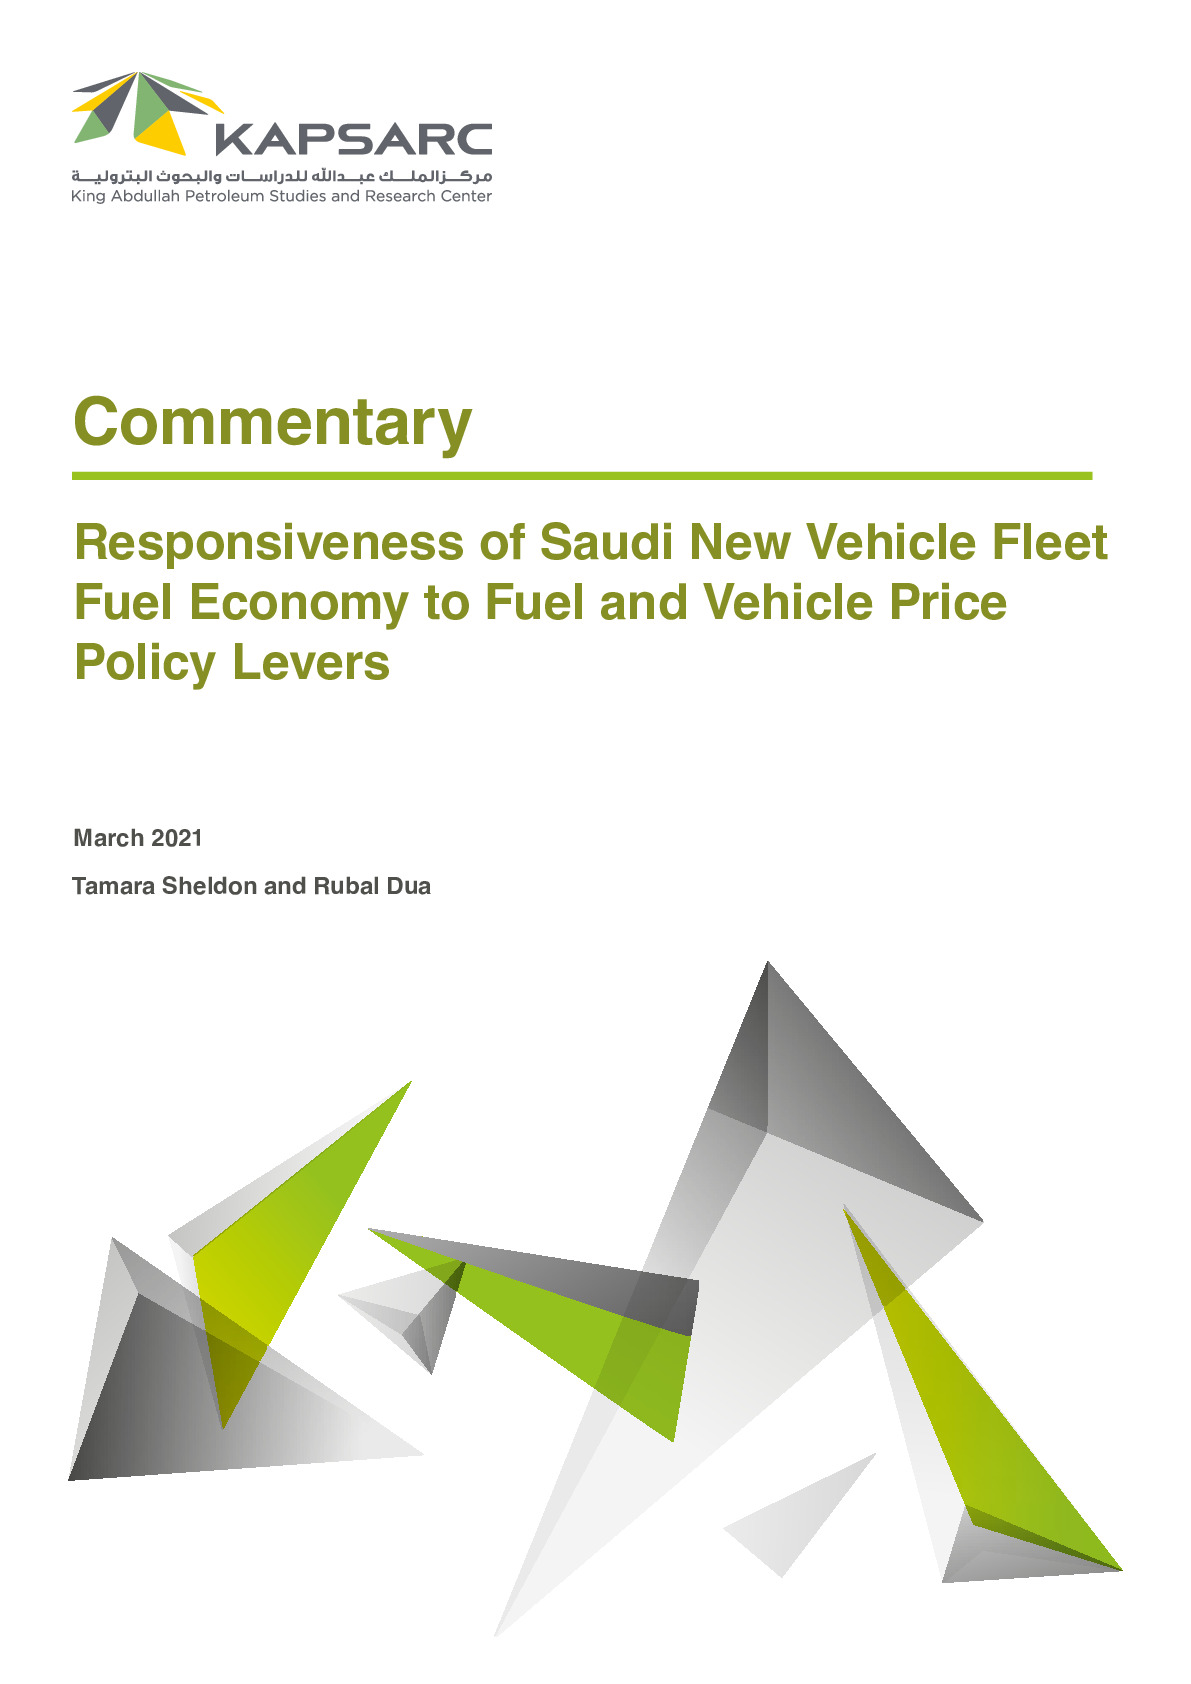 Responsiveness of Saudi New Vehicle Fleet Fuel Economy to Fuel and Vehicle Price Policy Levers